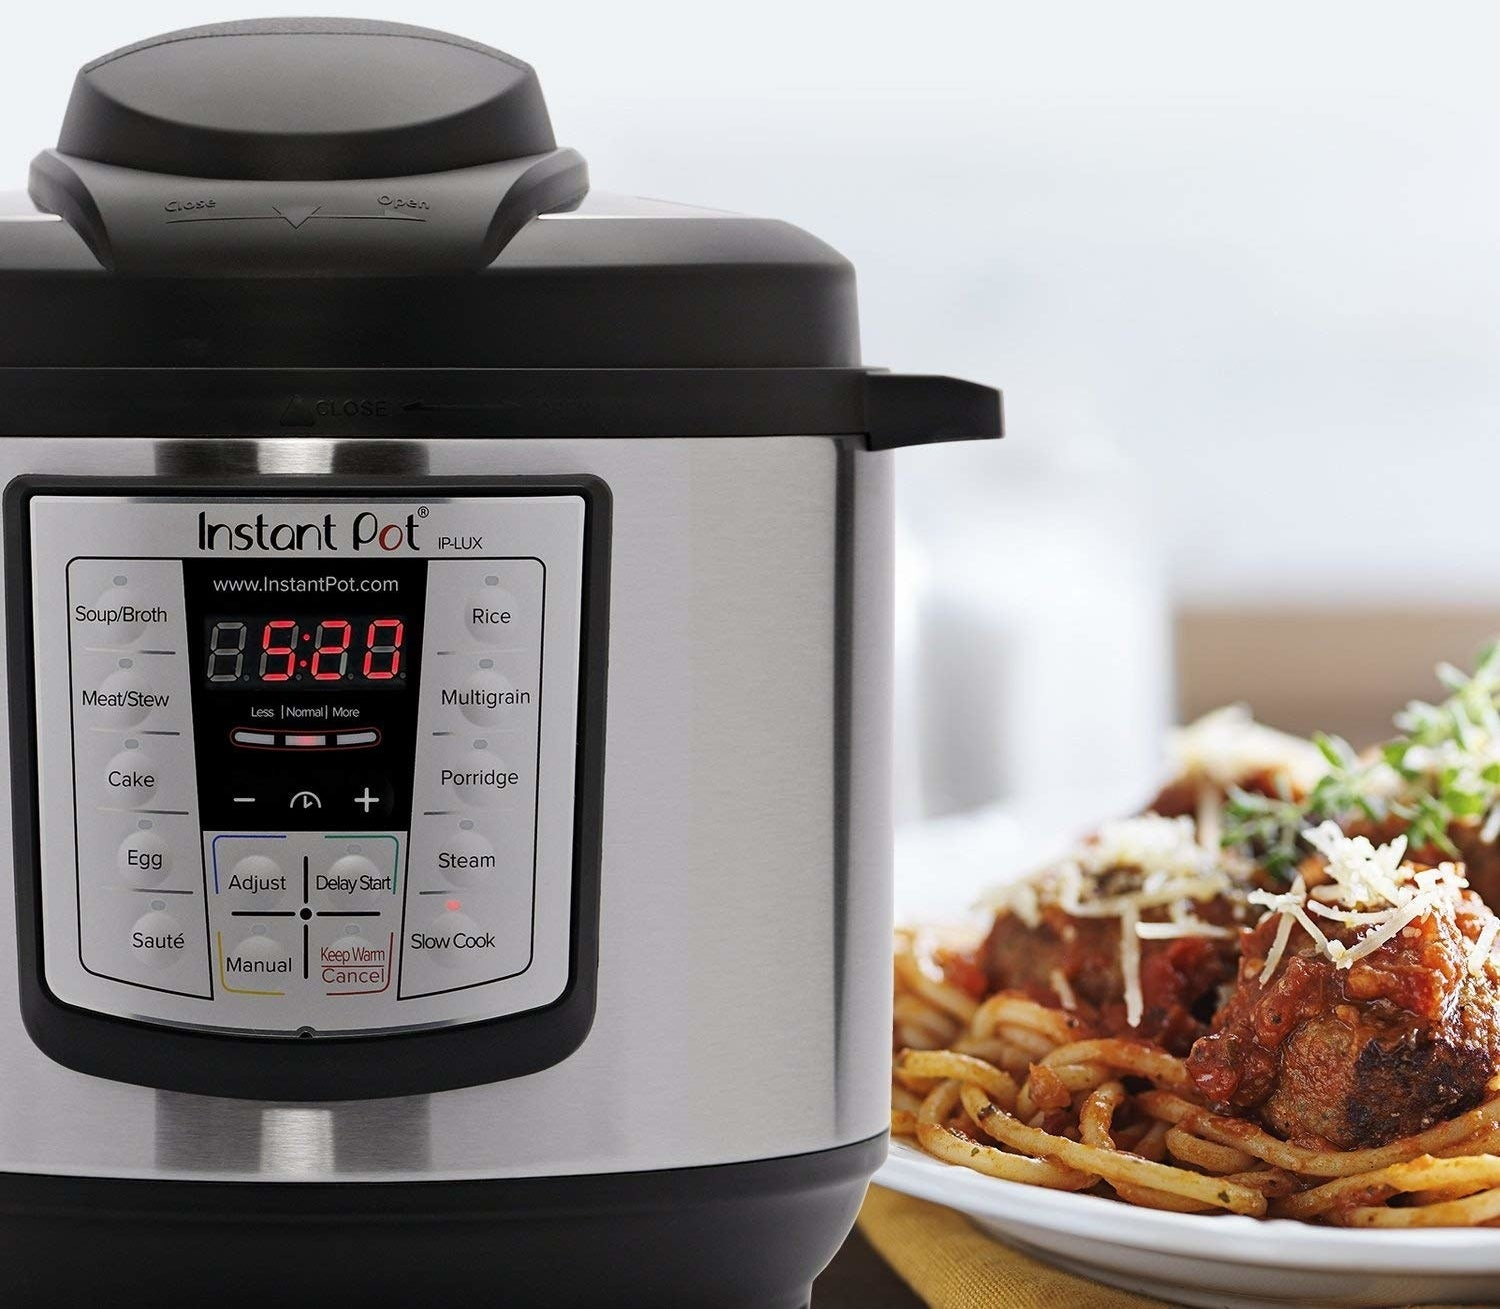 "This combines six kitchen appliances in one — it pressure cooks, slow cooks, cooks rice, sautés, steams, and warms. It reduces cooking time by 70% compared to other kitchen gadgets. It can keep food warm automatically for up to 10 hours, and there are three temperatures for sauté and slow-cook. The inner cooking pot, lid, and steam-rack are dishwasher-safe!Promising review: ""This is probably the only kitchen appliance I've ever bought that has earned permanent status on my kitchen counter. I use it at least three times a week. It's particularly perfect for vegans and WFPB-eaters. I can cook beans and grains from scratch in no time! Such a wonderful investment. I liked it so much that I got one for each of my sisters for the holidays. Best. Thing. Ever."" —cynthia w. rogersCheck out our review of the incredible Instant Pot!Get it from Amazon for $59.92+ (available in three sizes)."